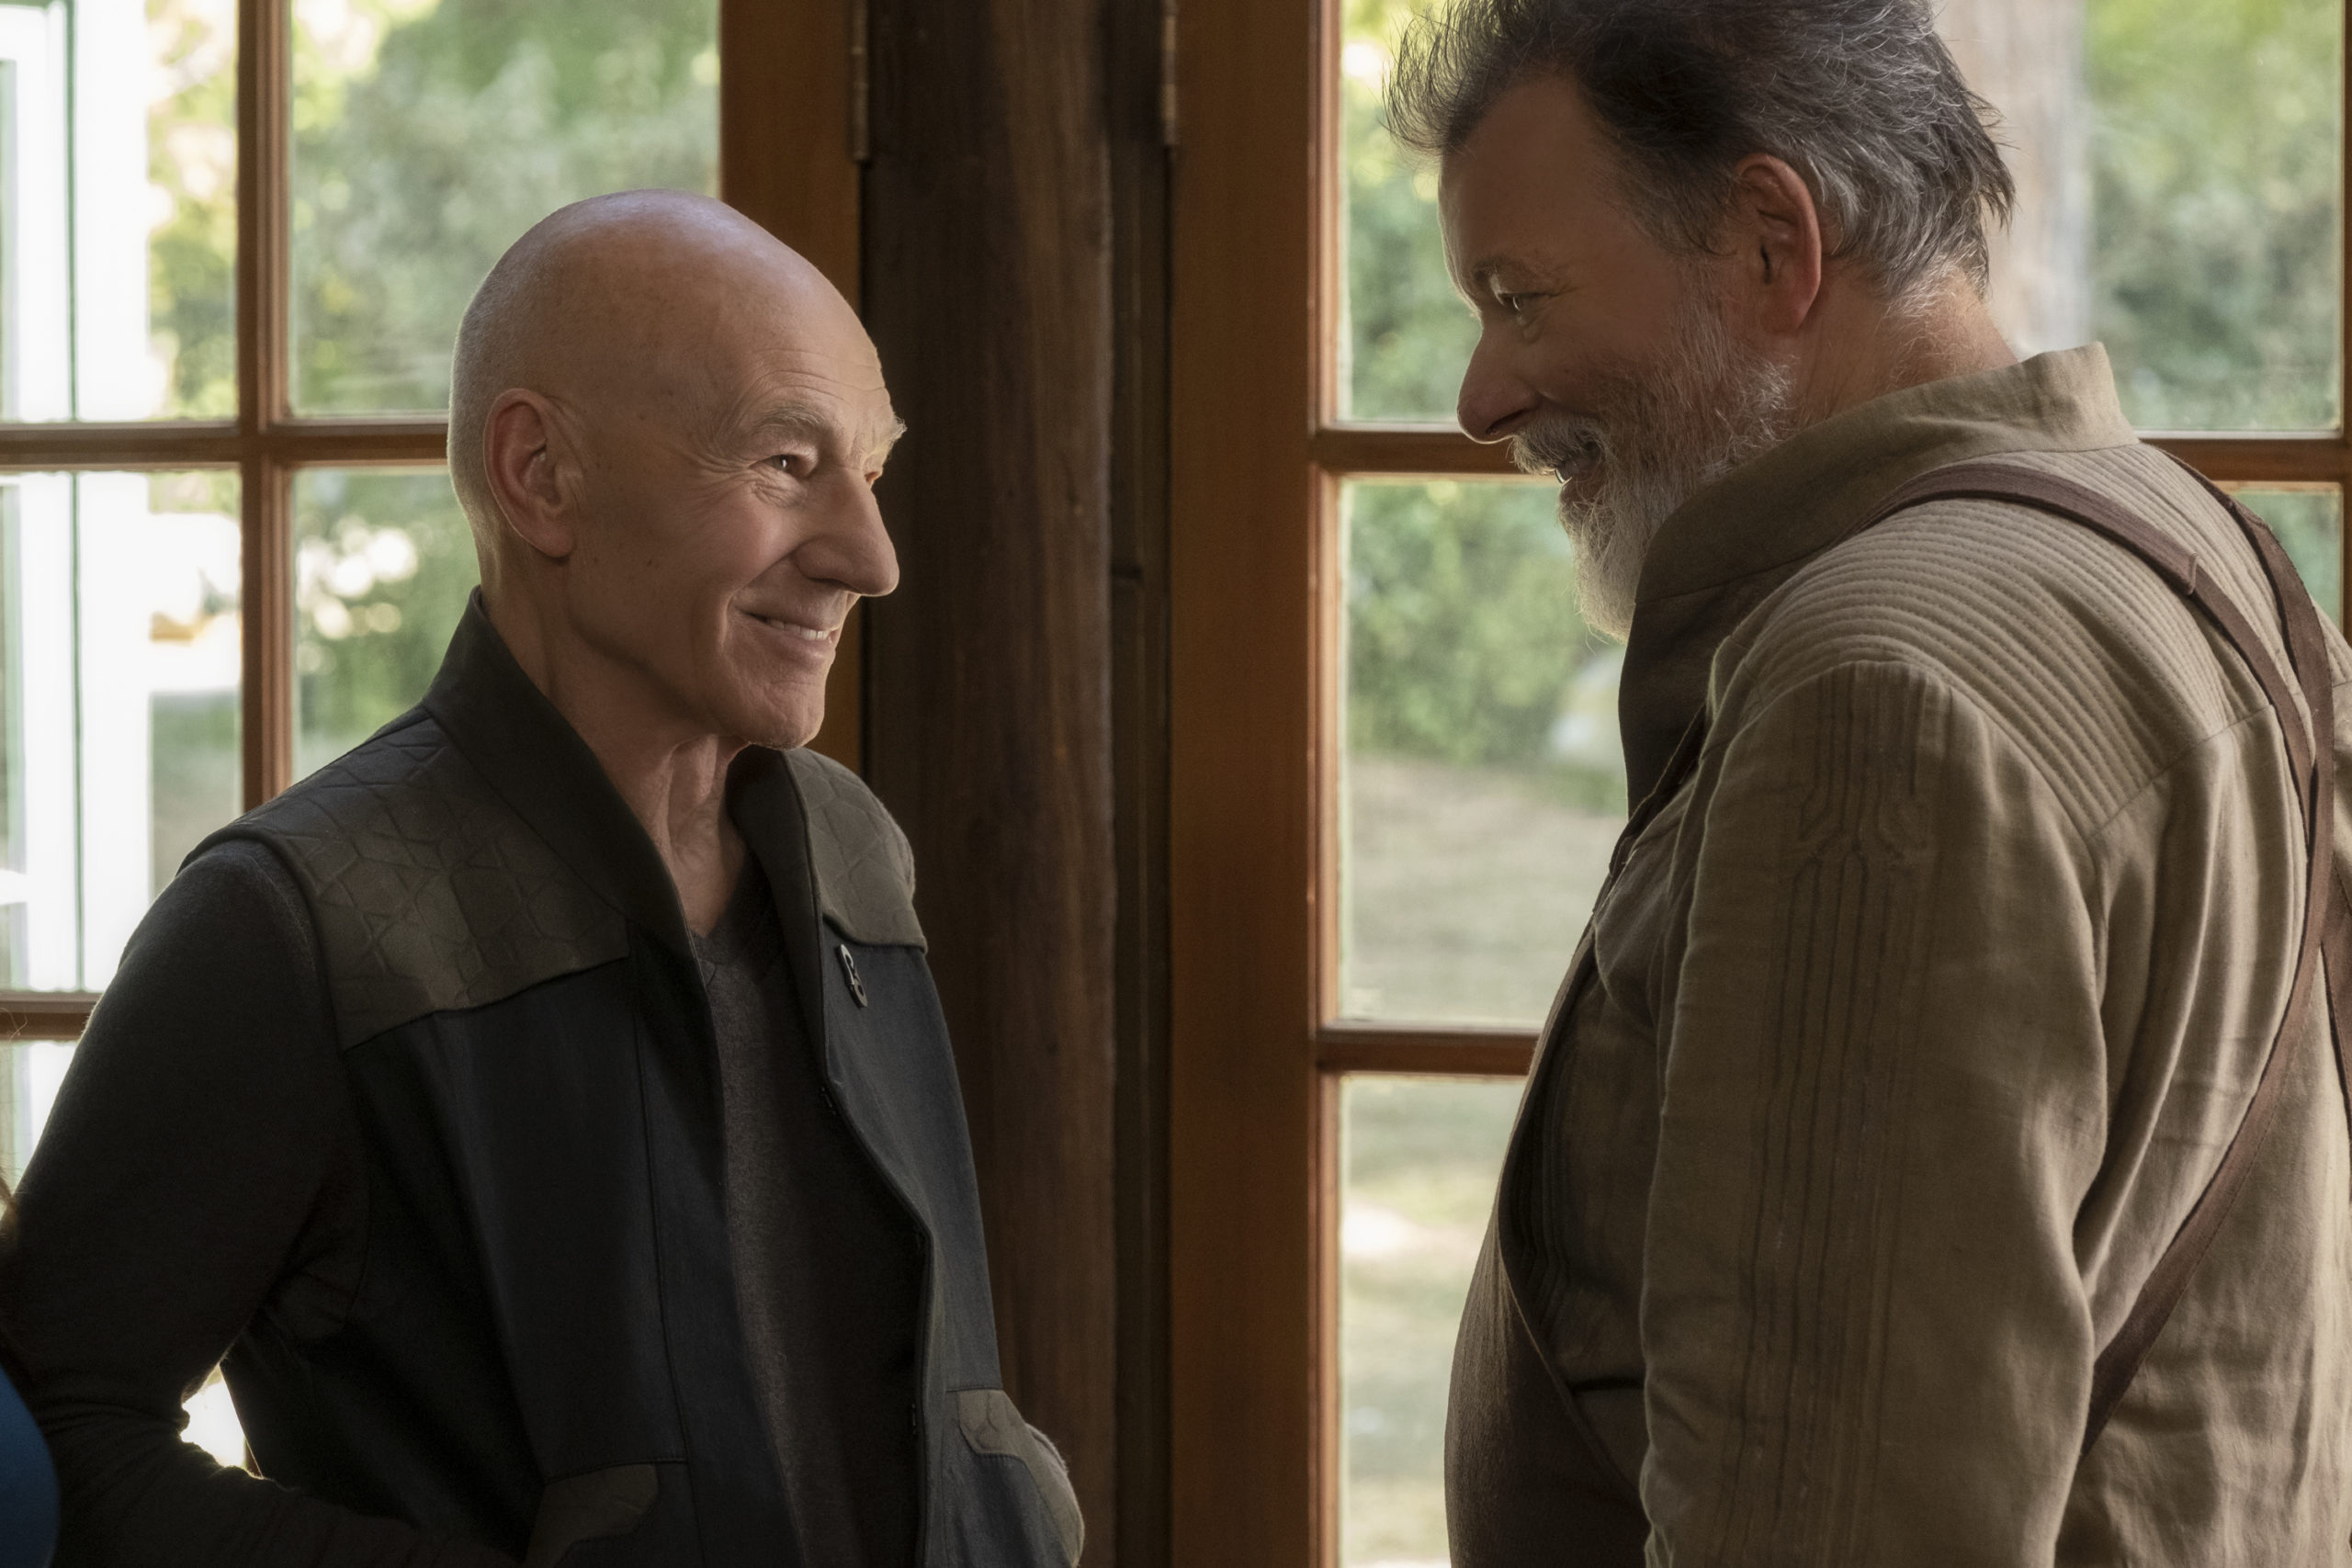 Star Trek Picard Episode 5 Preview - Picard Is Trying To Sneak Into The Bad Place